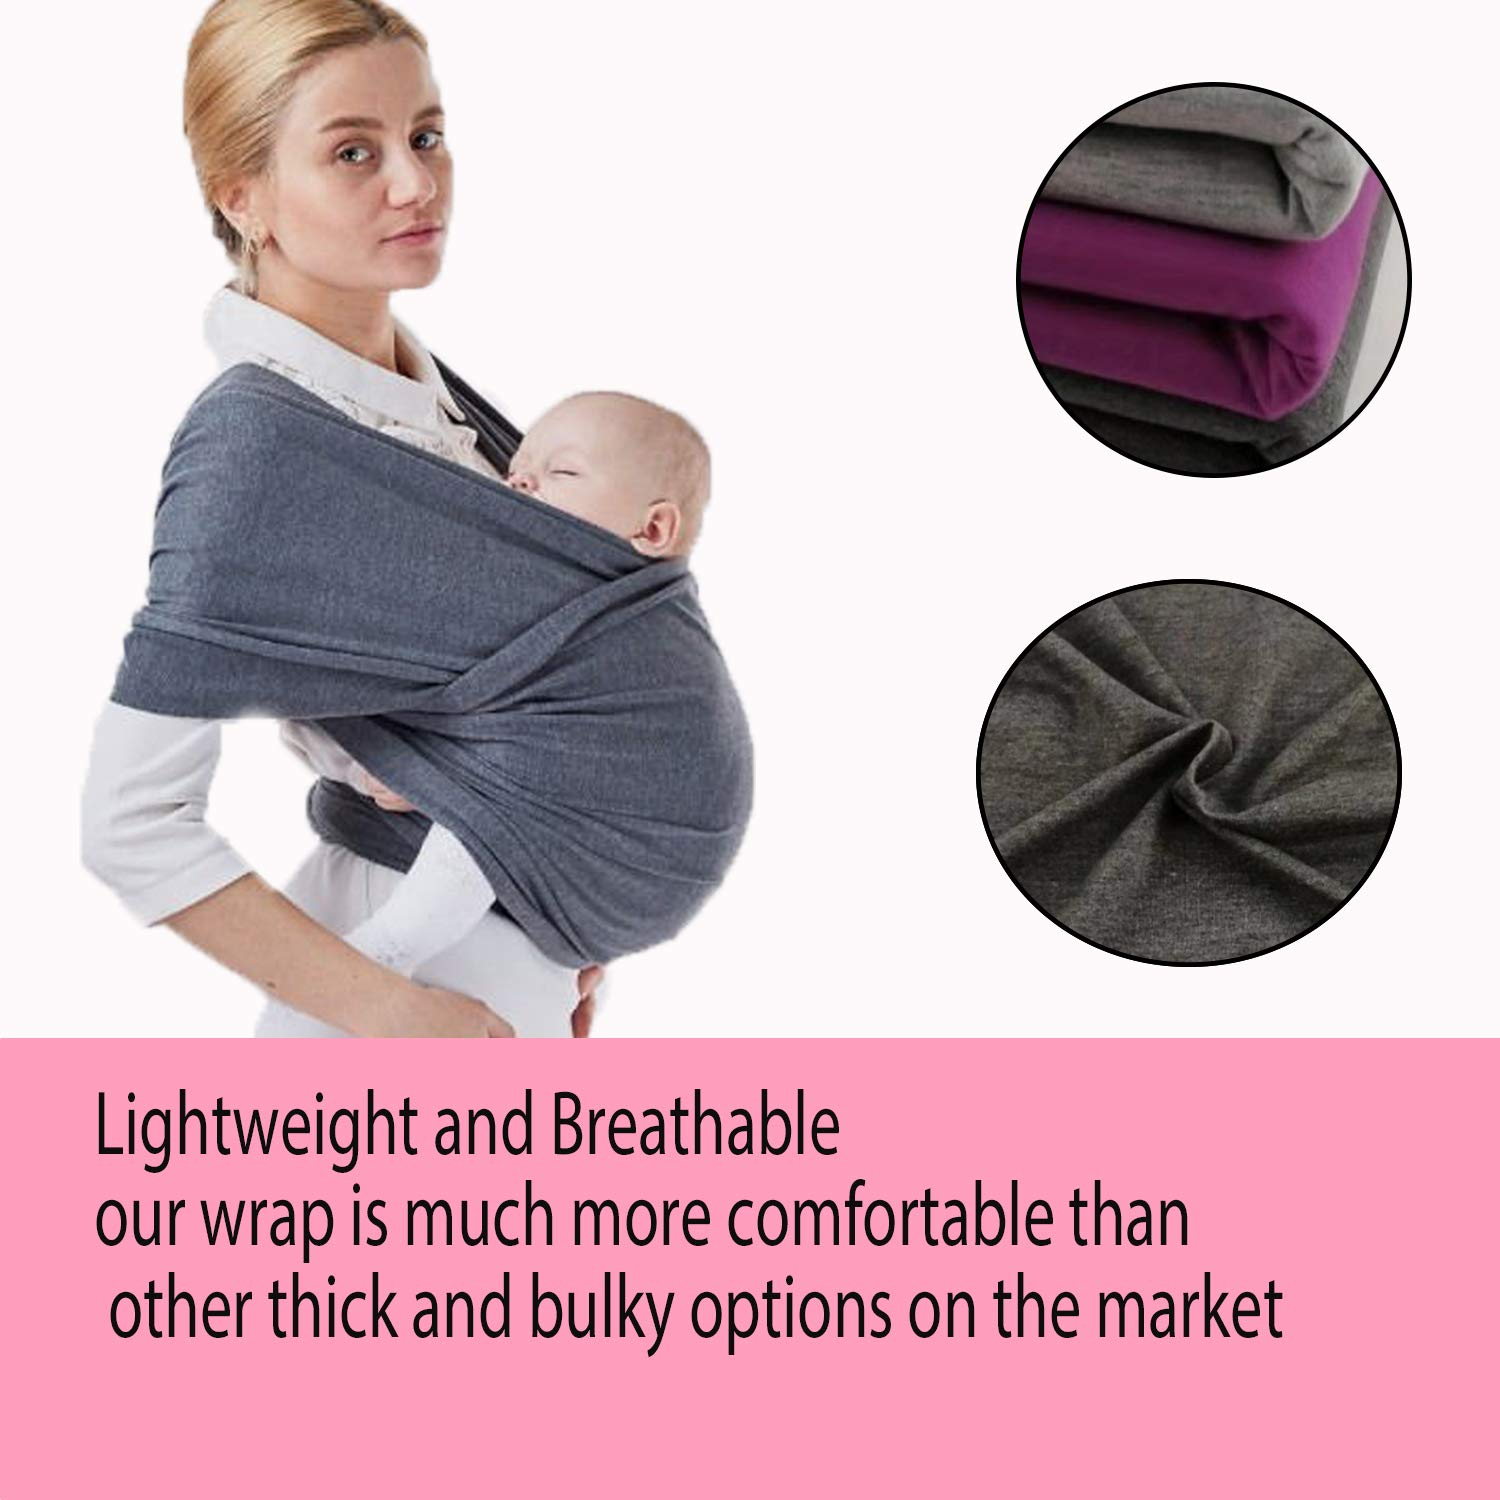 Baby Wrap for Newborns One Size Fits All Light-grey1 Rain/&Star Baby Sling Infants /& Toddlers| Nursing Cover Cotton//Spandex |Baby Carrie Ideal Gift| Baby Wrap Sling Organic Stretchy Carrier